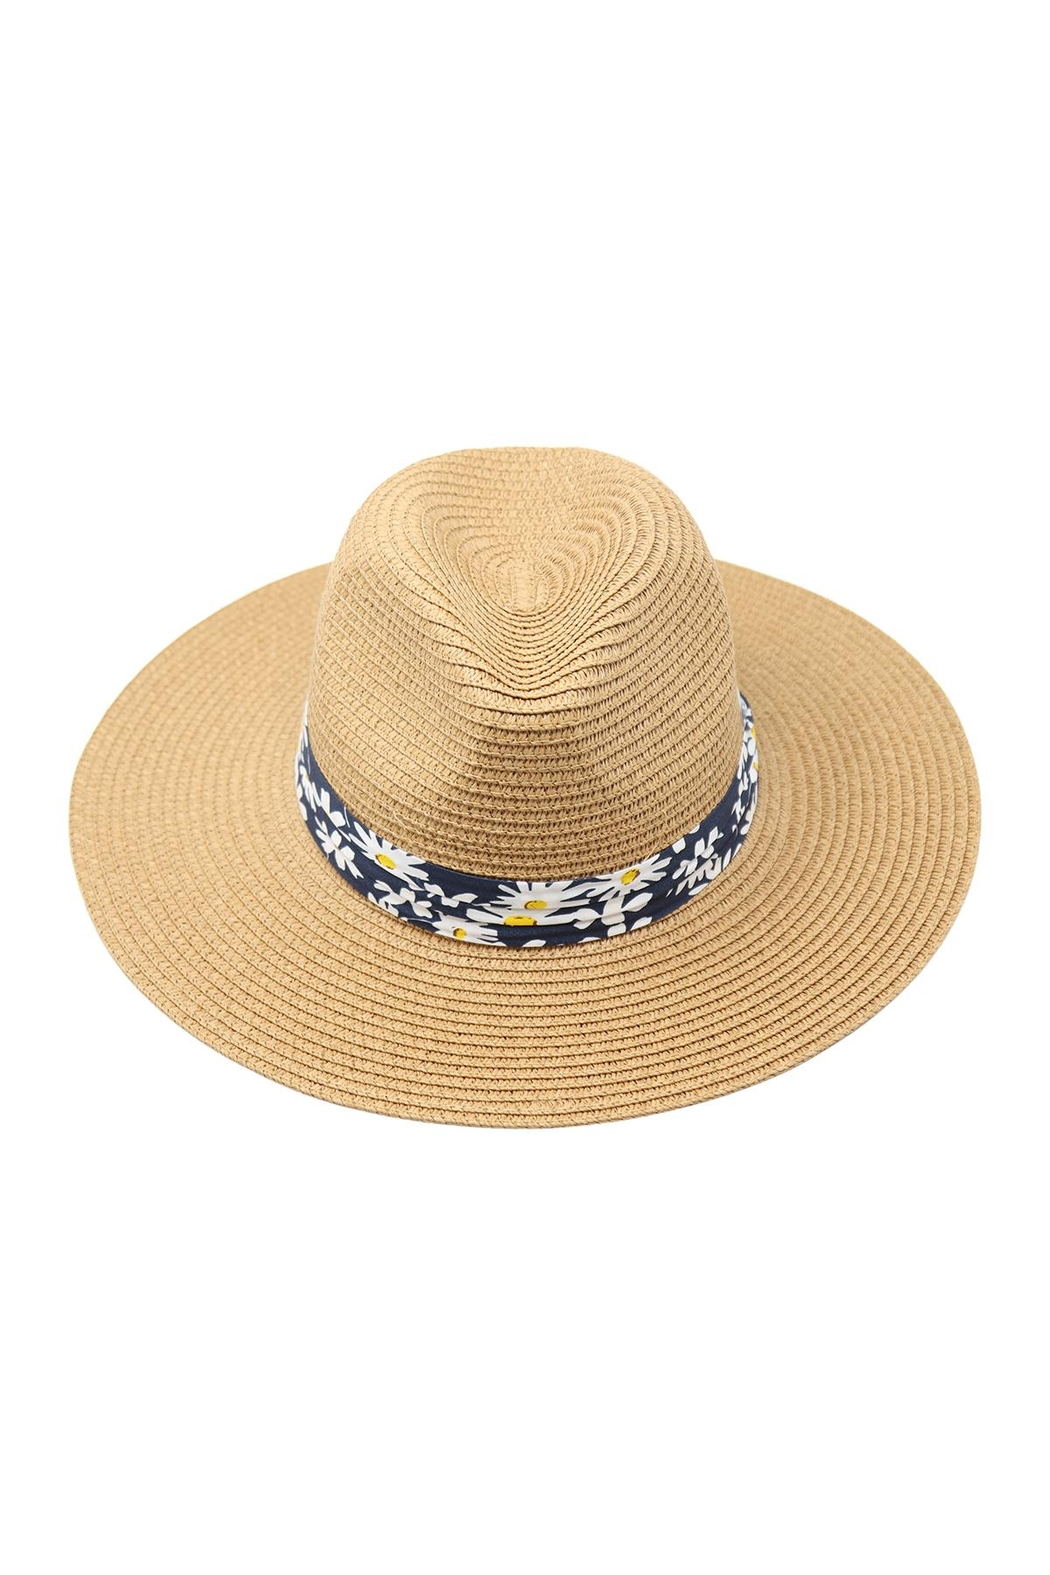 Riah Fashion White-Women's-Summer-Flower-Strap-Hat - Front Cropped Image